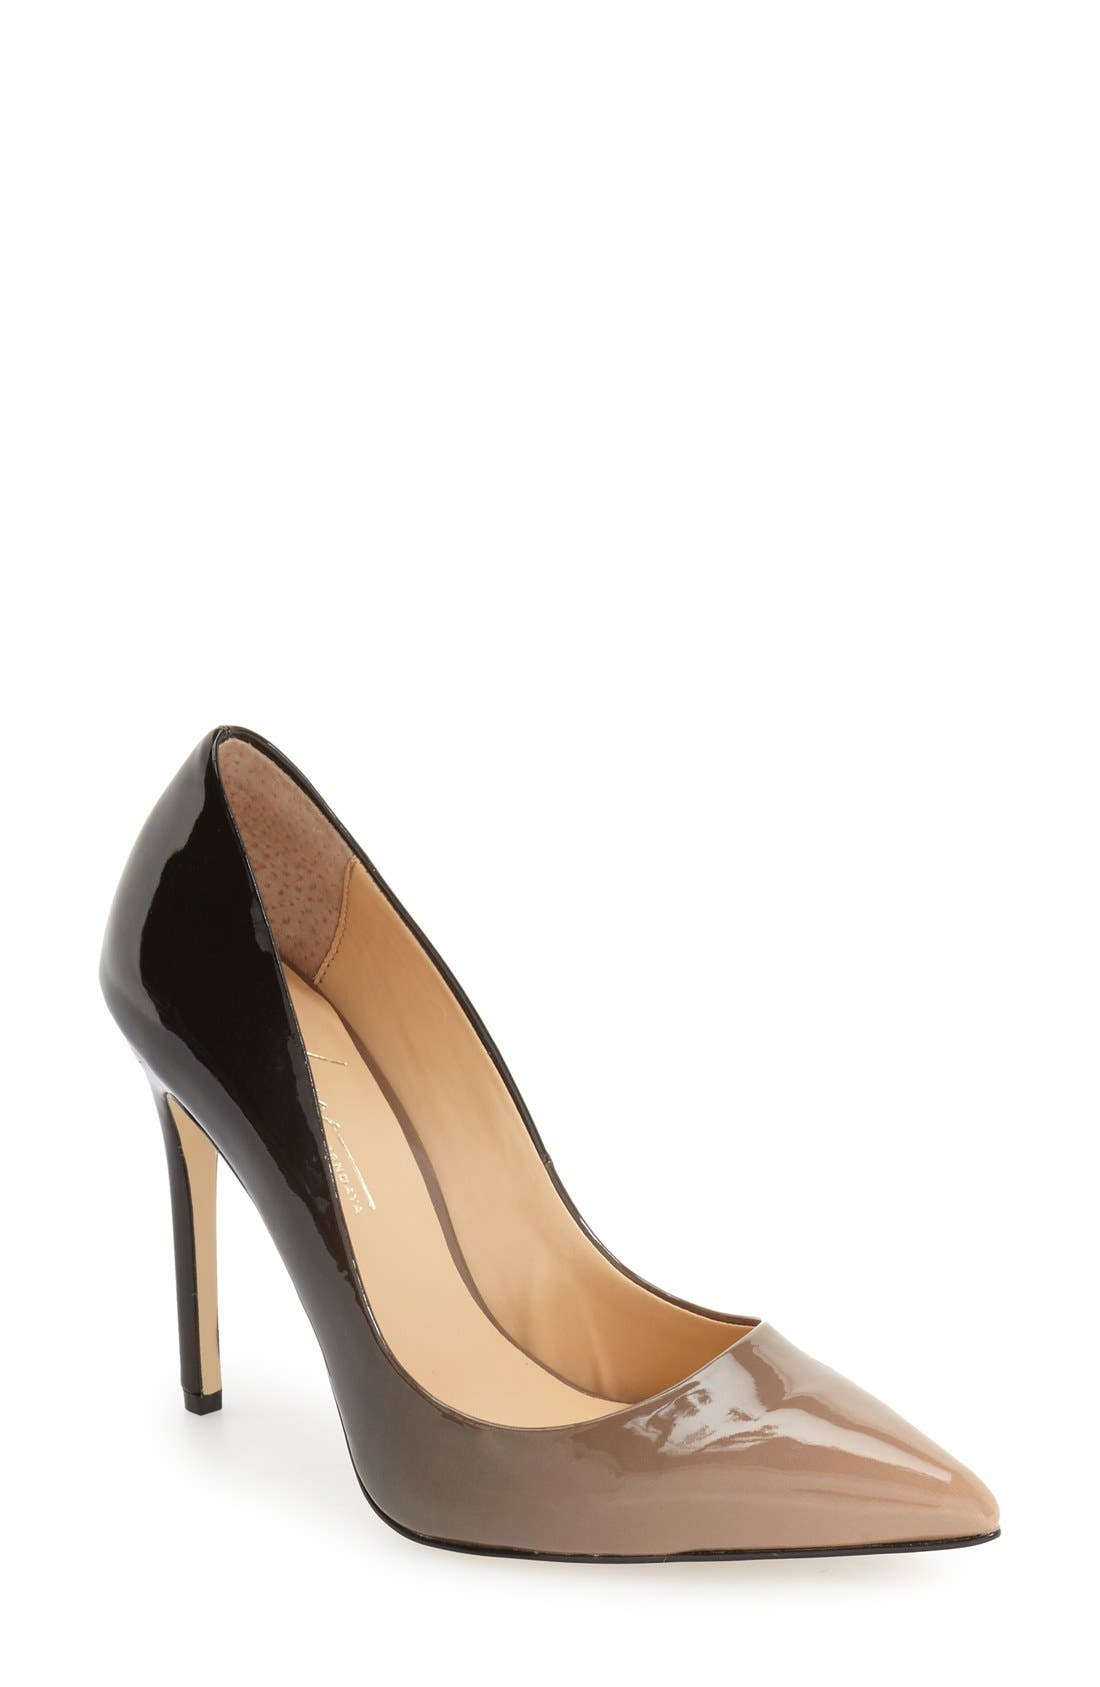 Alternate Image 1 Selected - Daya by Zendaya 'Atmore II' Pointy Toe Pump (Women)